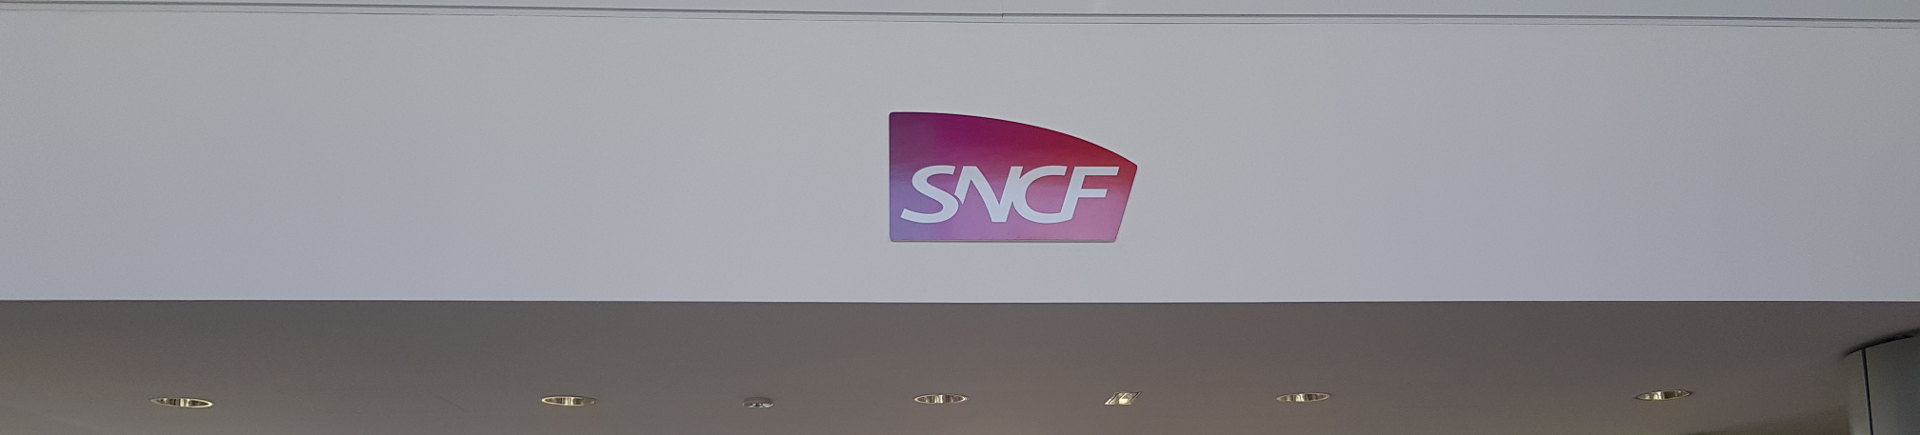 Logo SNCF, balise sonore, accessibilité, navigueo+HIFI